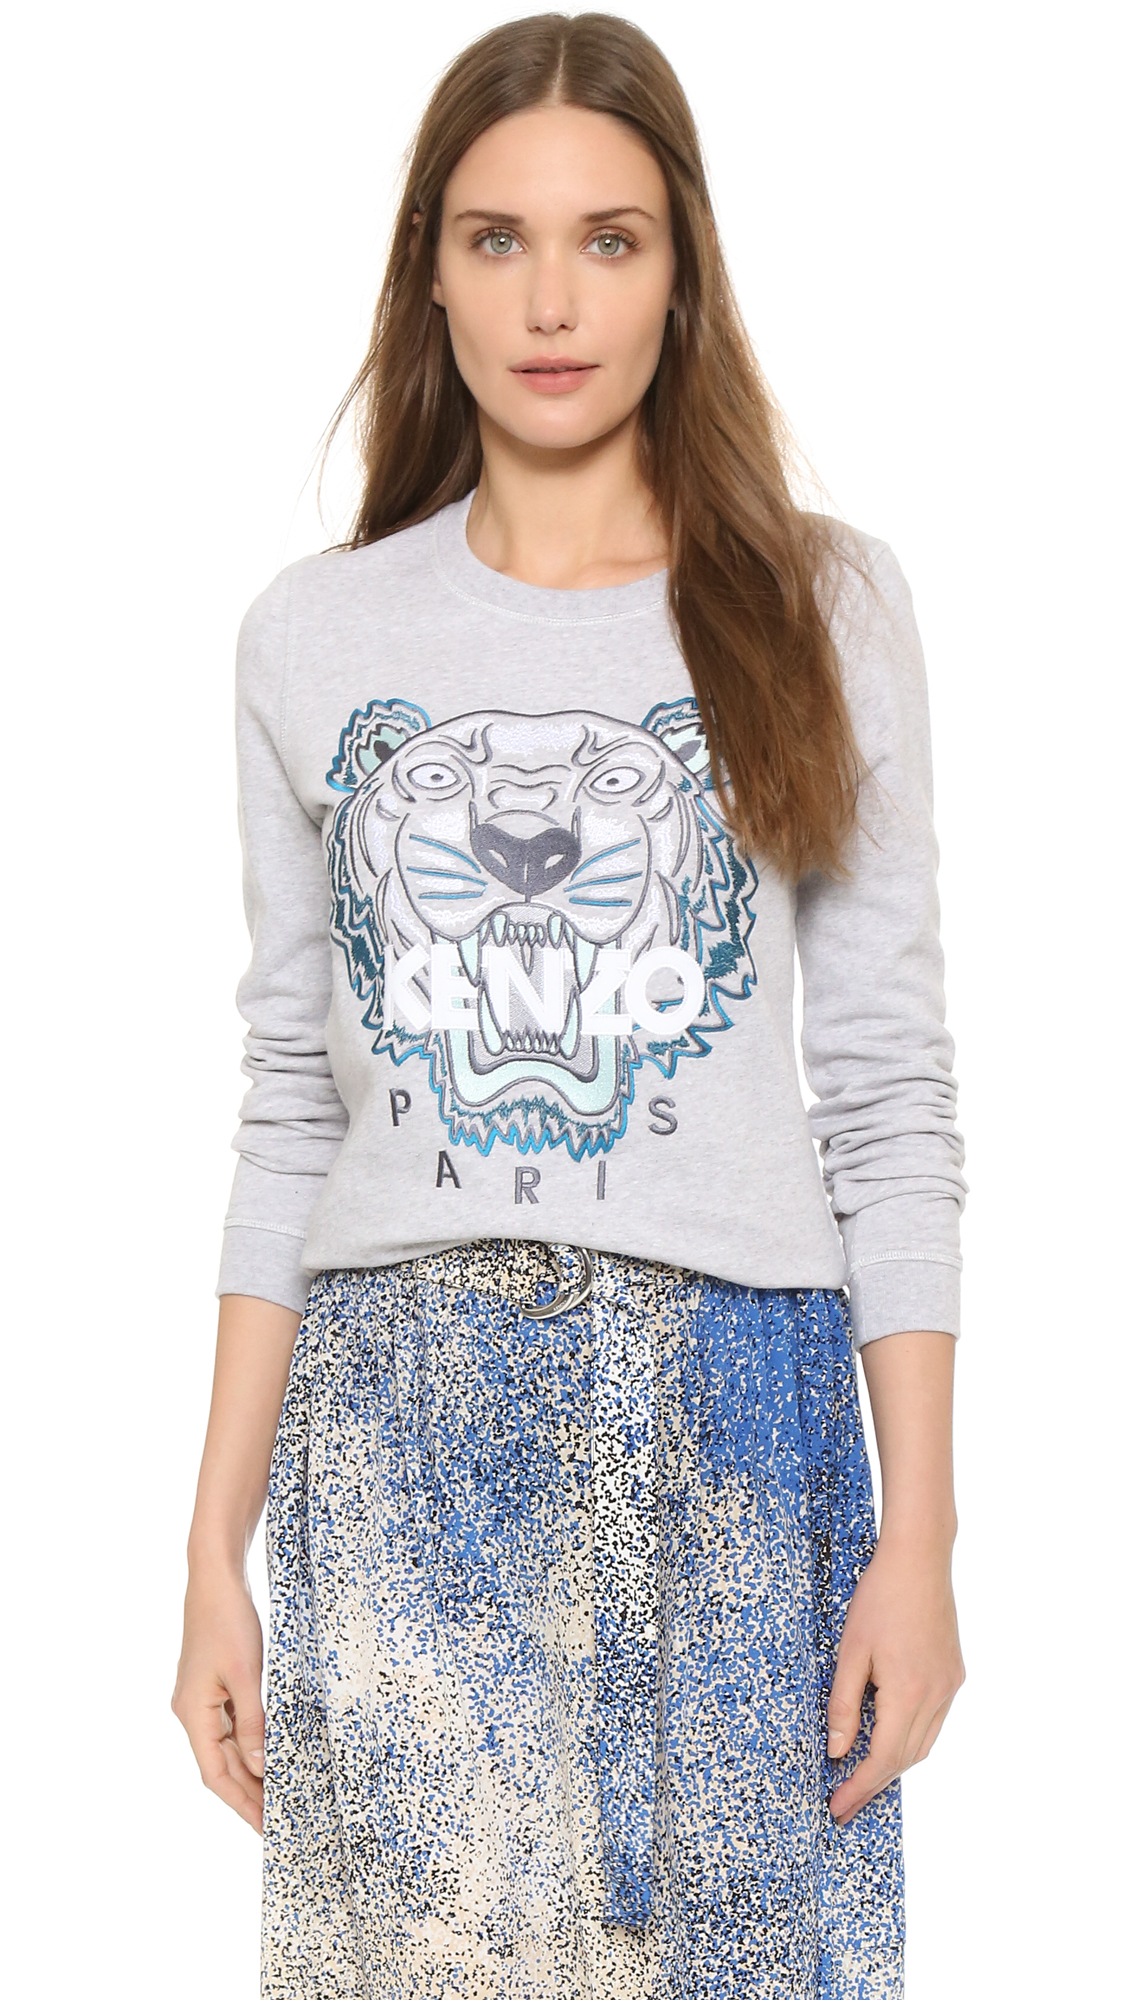 951aa36675 Gallery. Previously sold at: Shopbop · Women's Graphic Sweatshirts